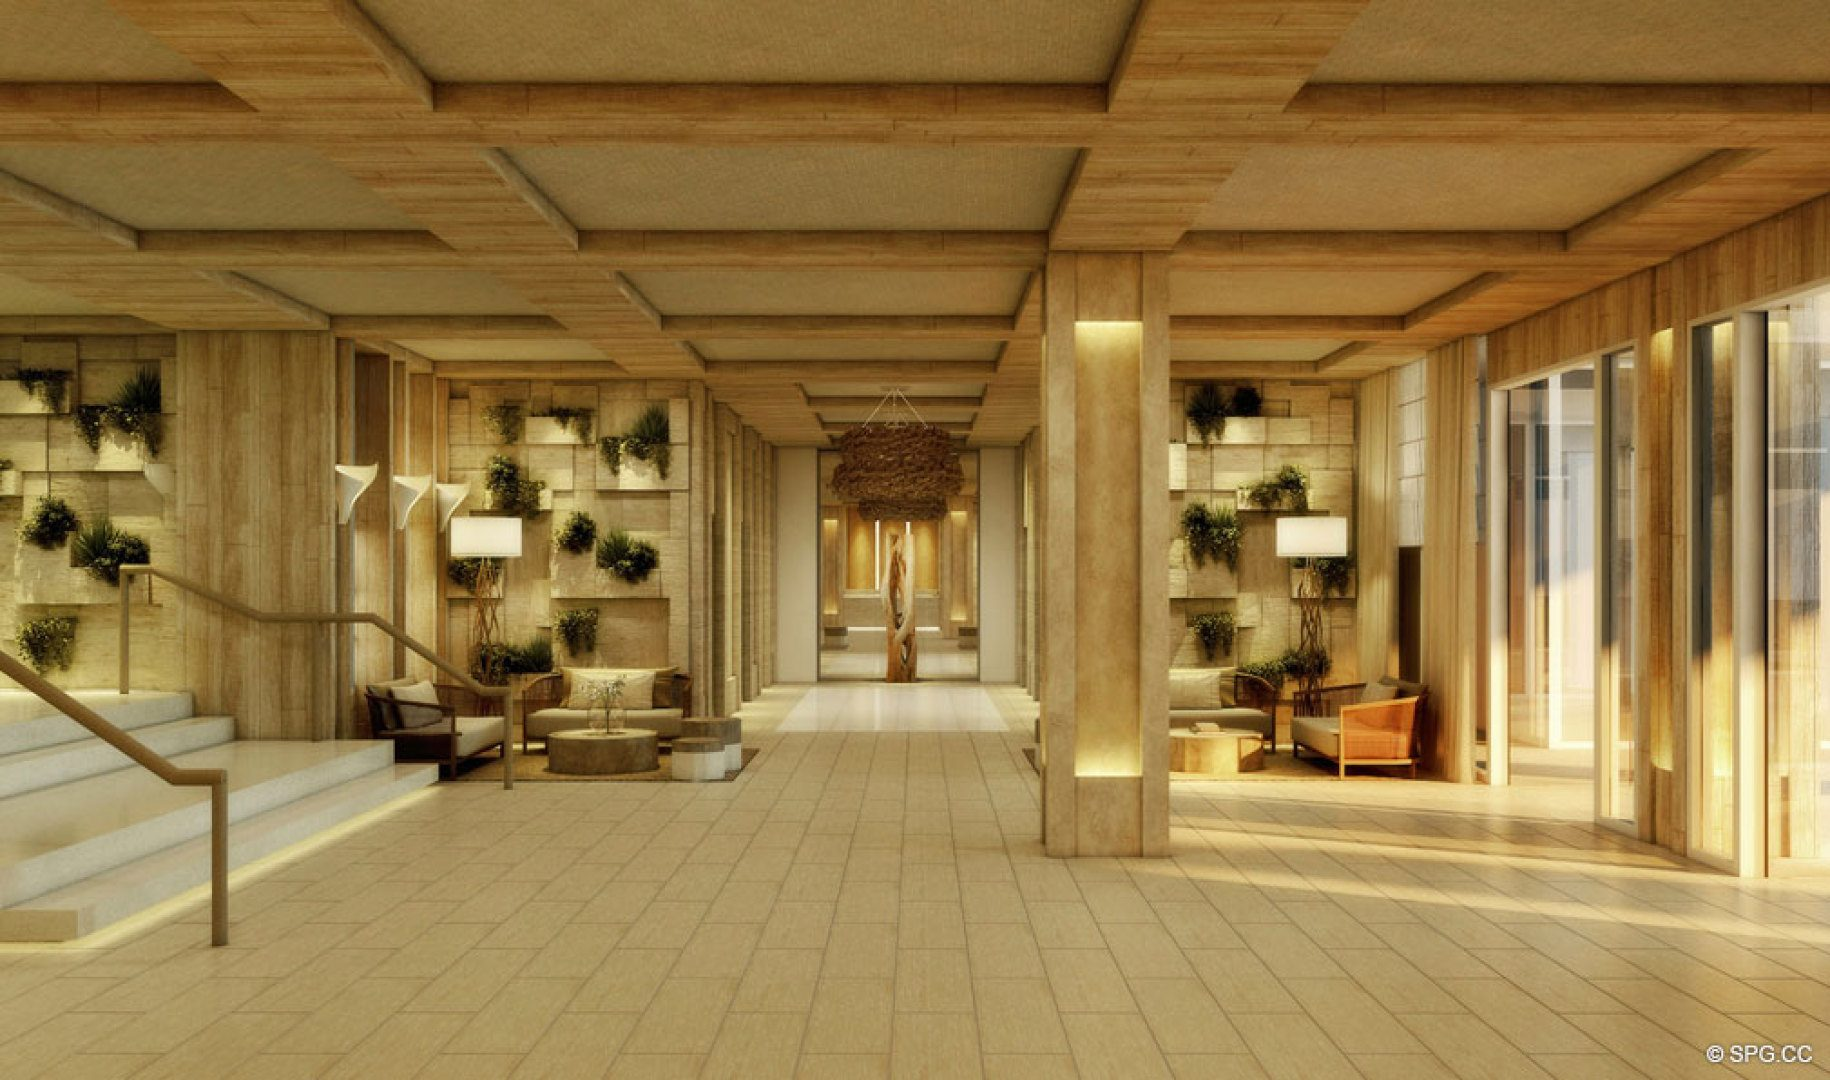 Lobby at 1 Hotel & Homes South Beach, Luxury Oceanfront Condominiums Located at 2399 Collins Ave, Miami Beach, FL 33139